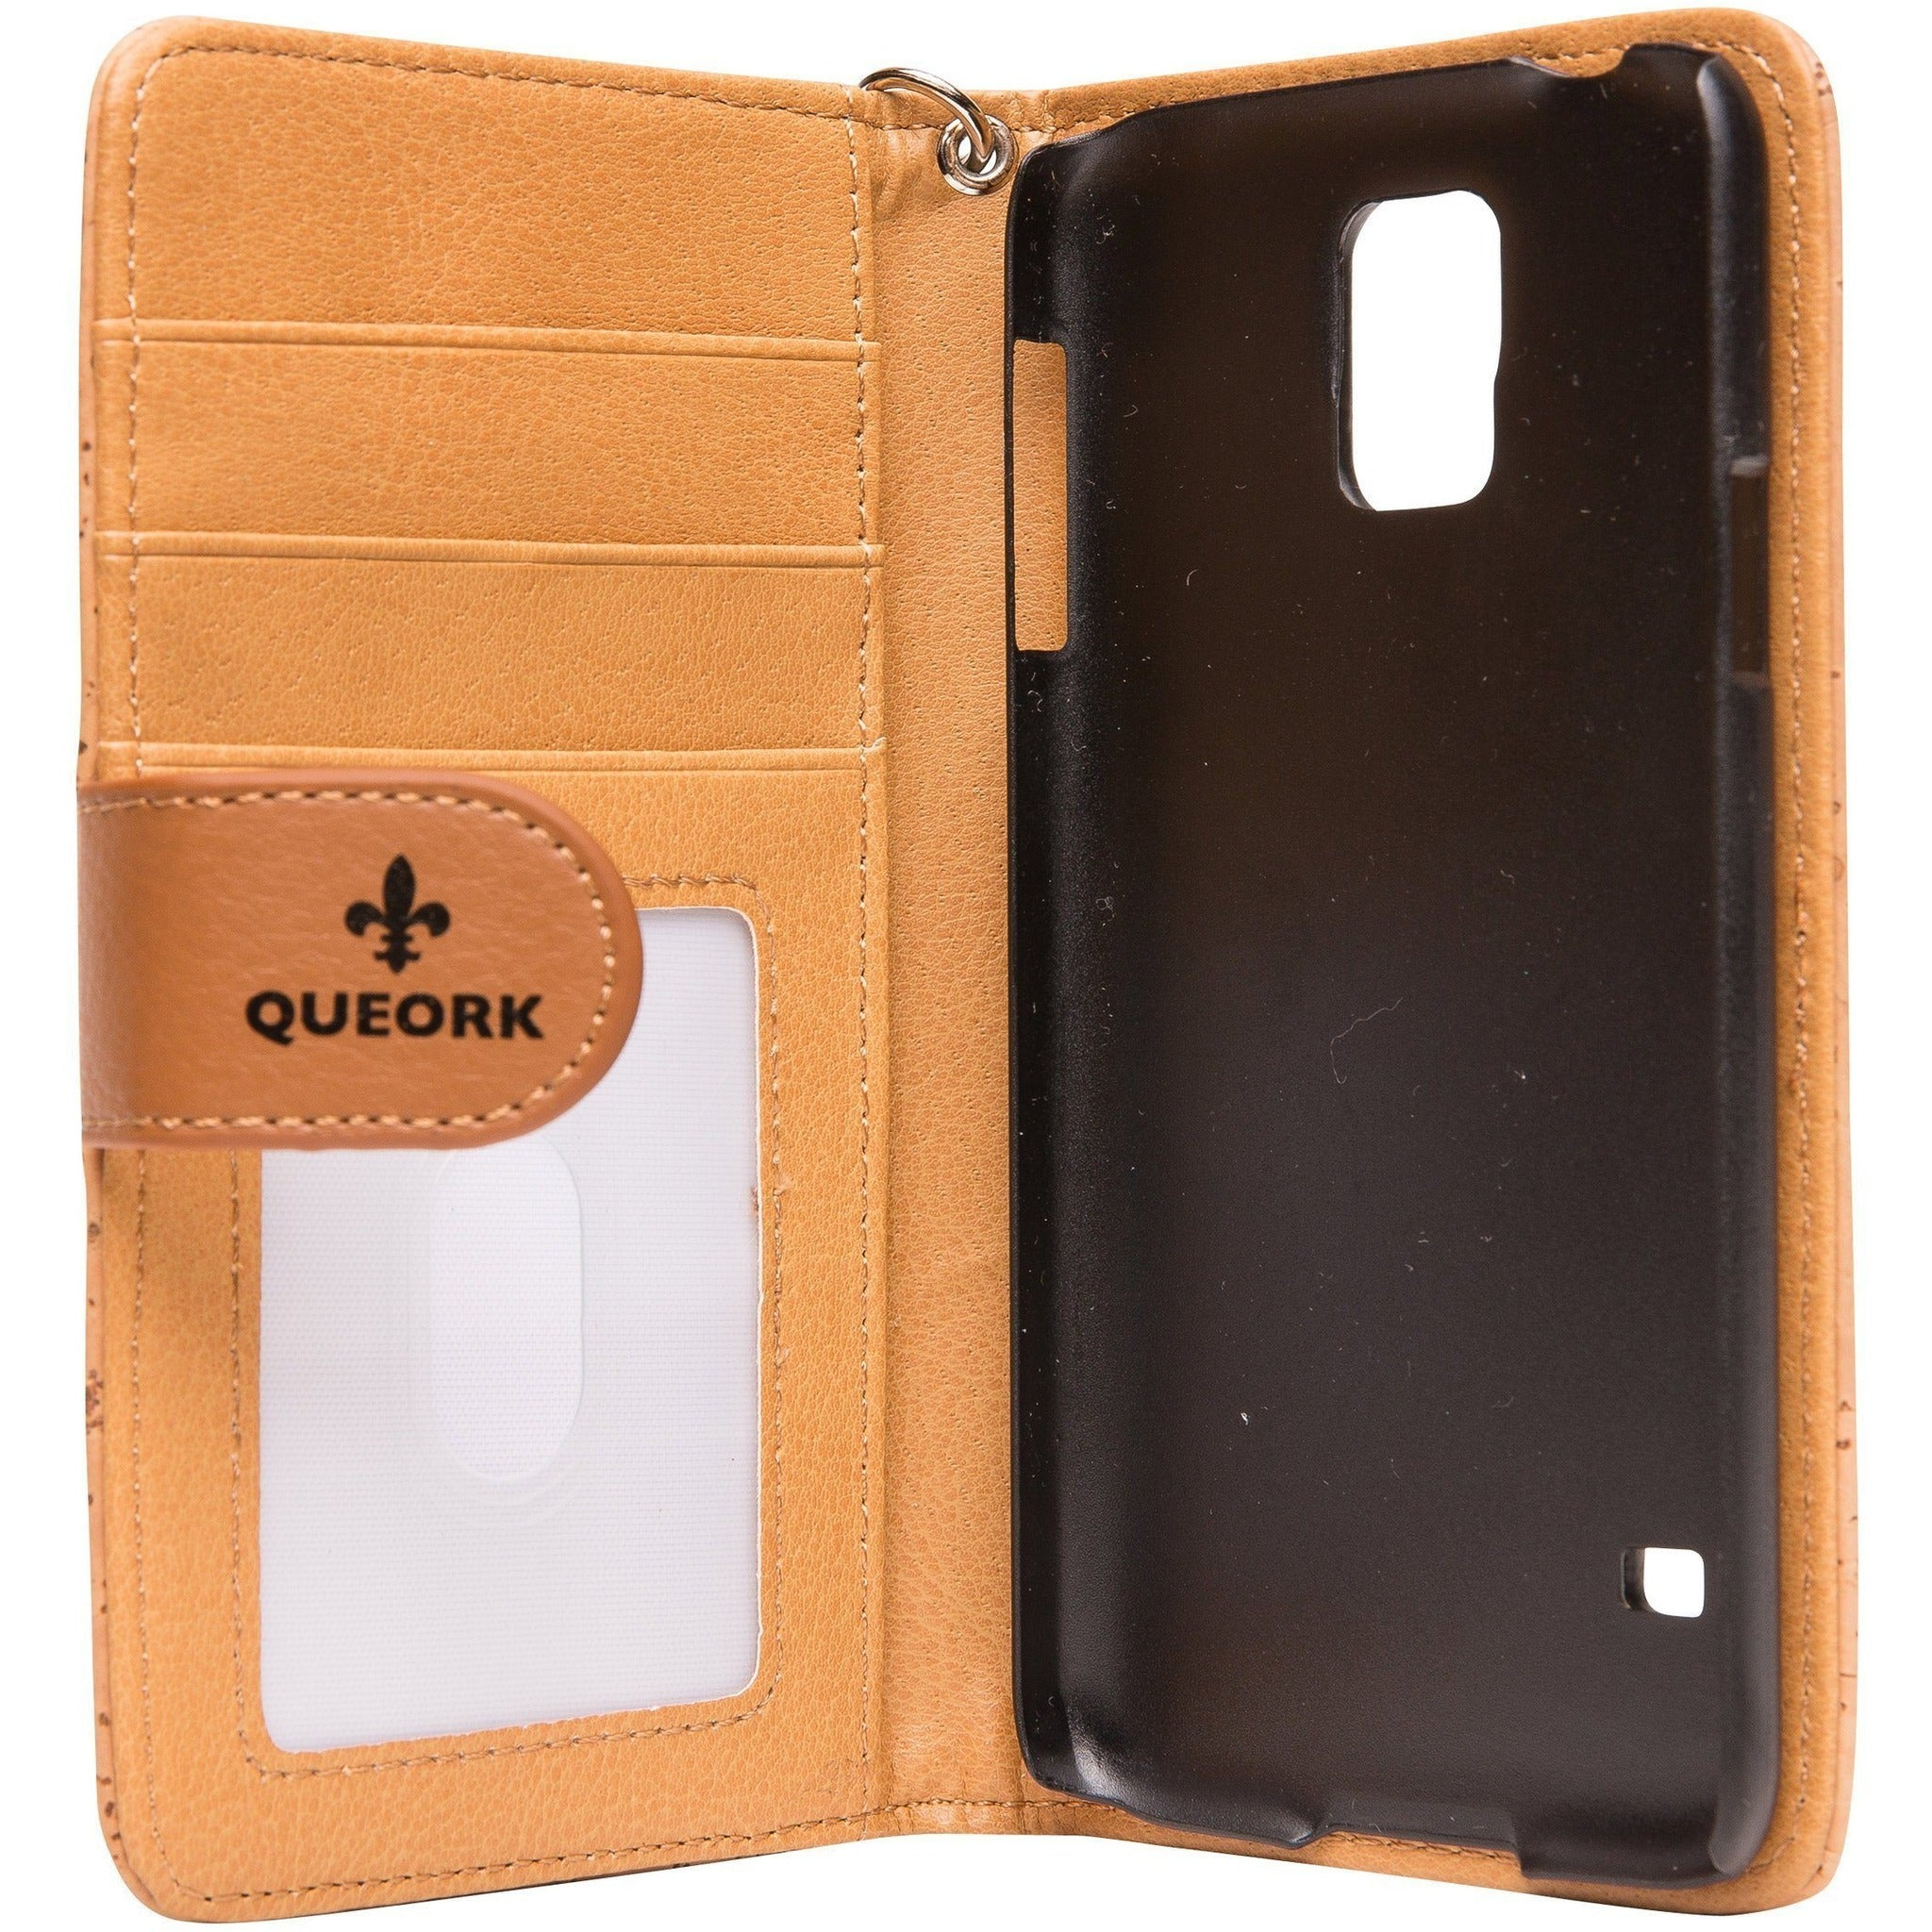 queork cork samsung phone wallet case